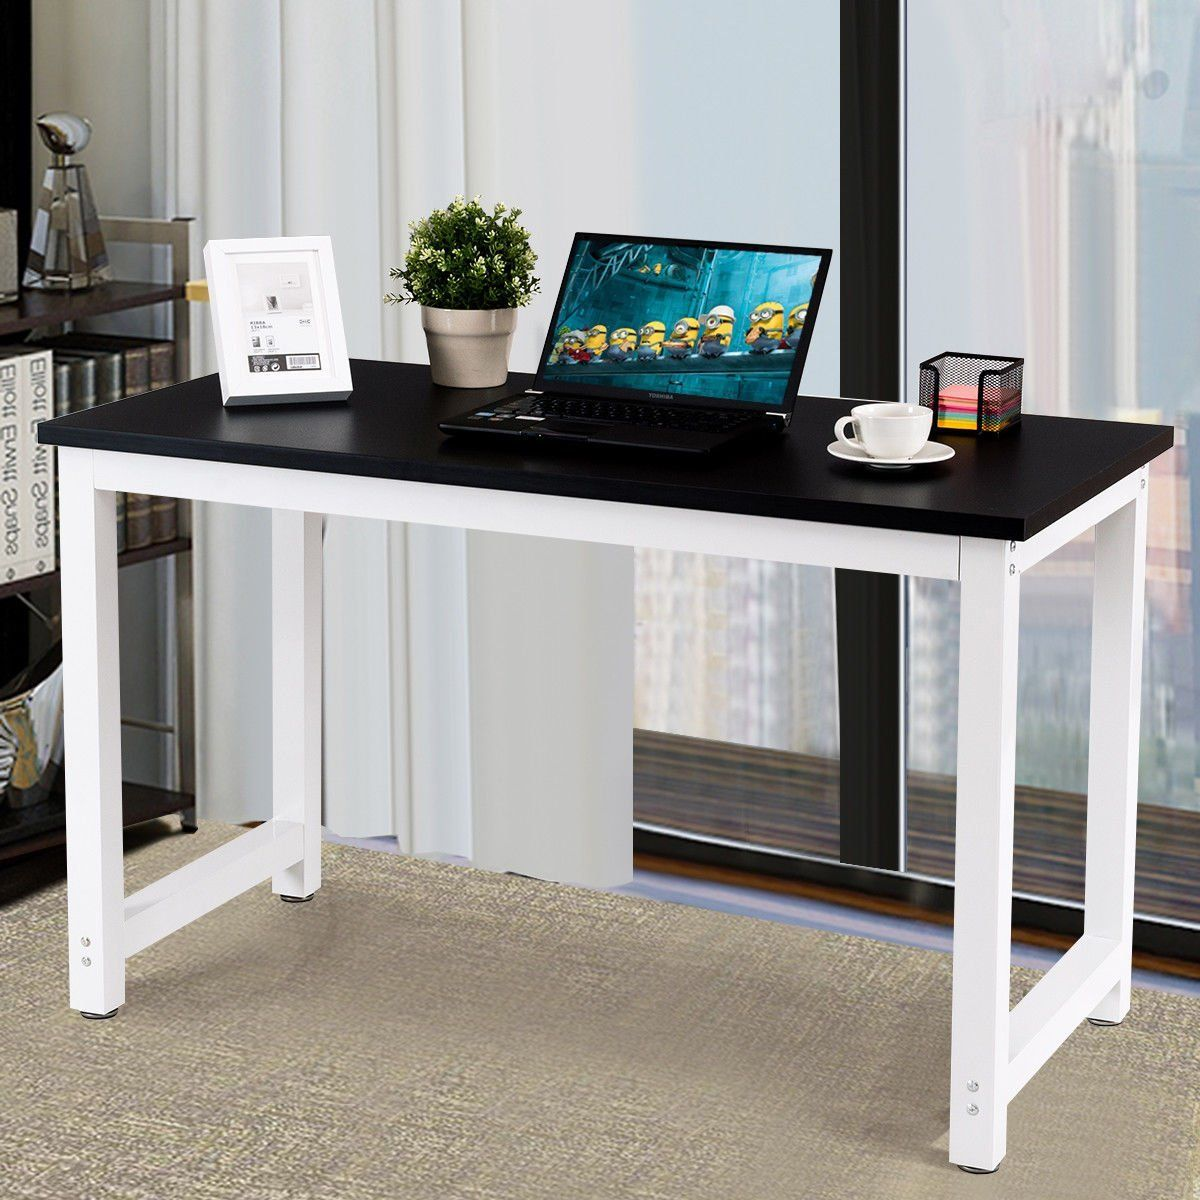 Portable Wood Computer Desk PC Laptop Table Workstation Home Office Furniture